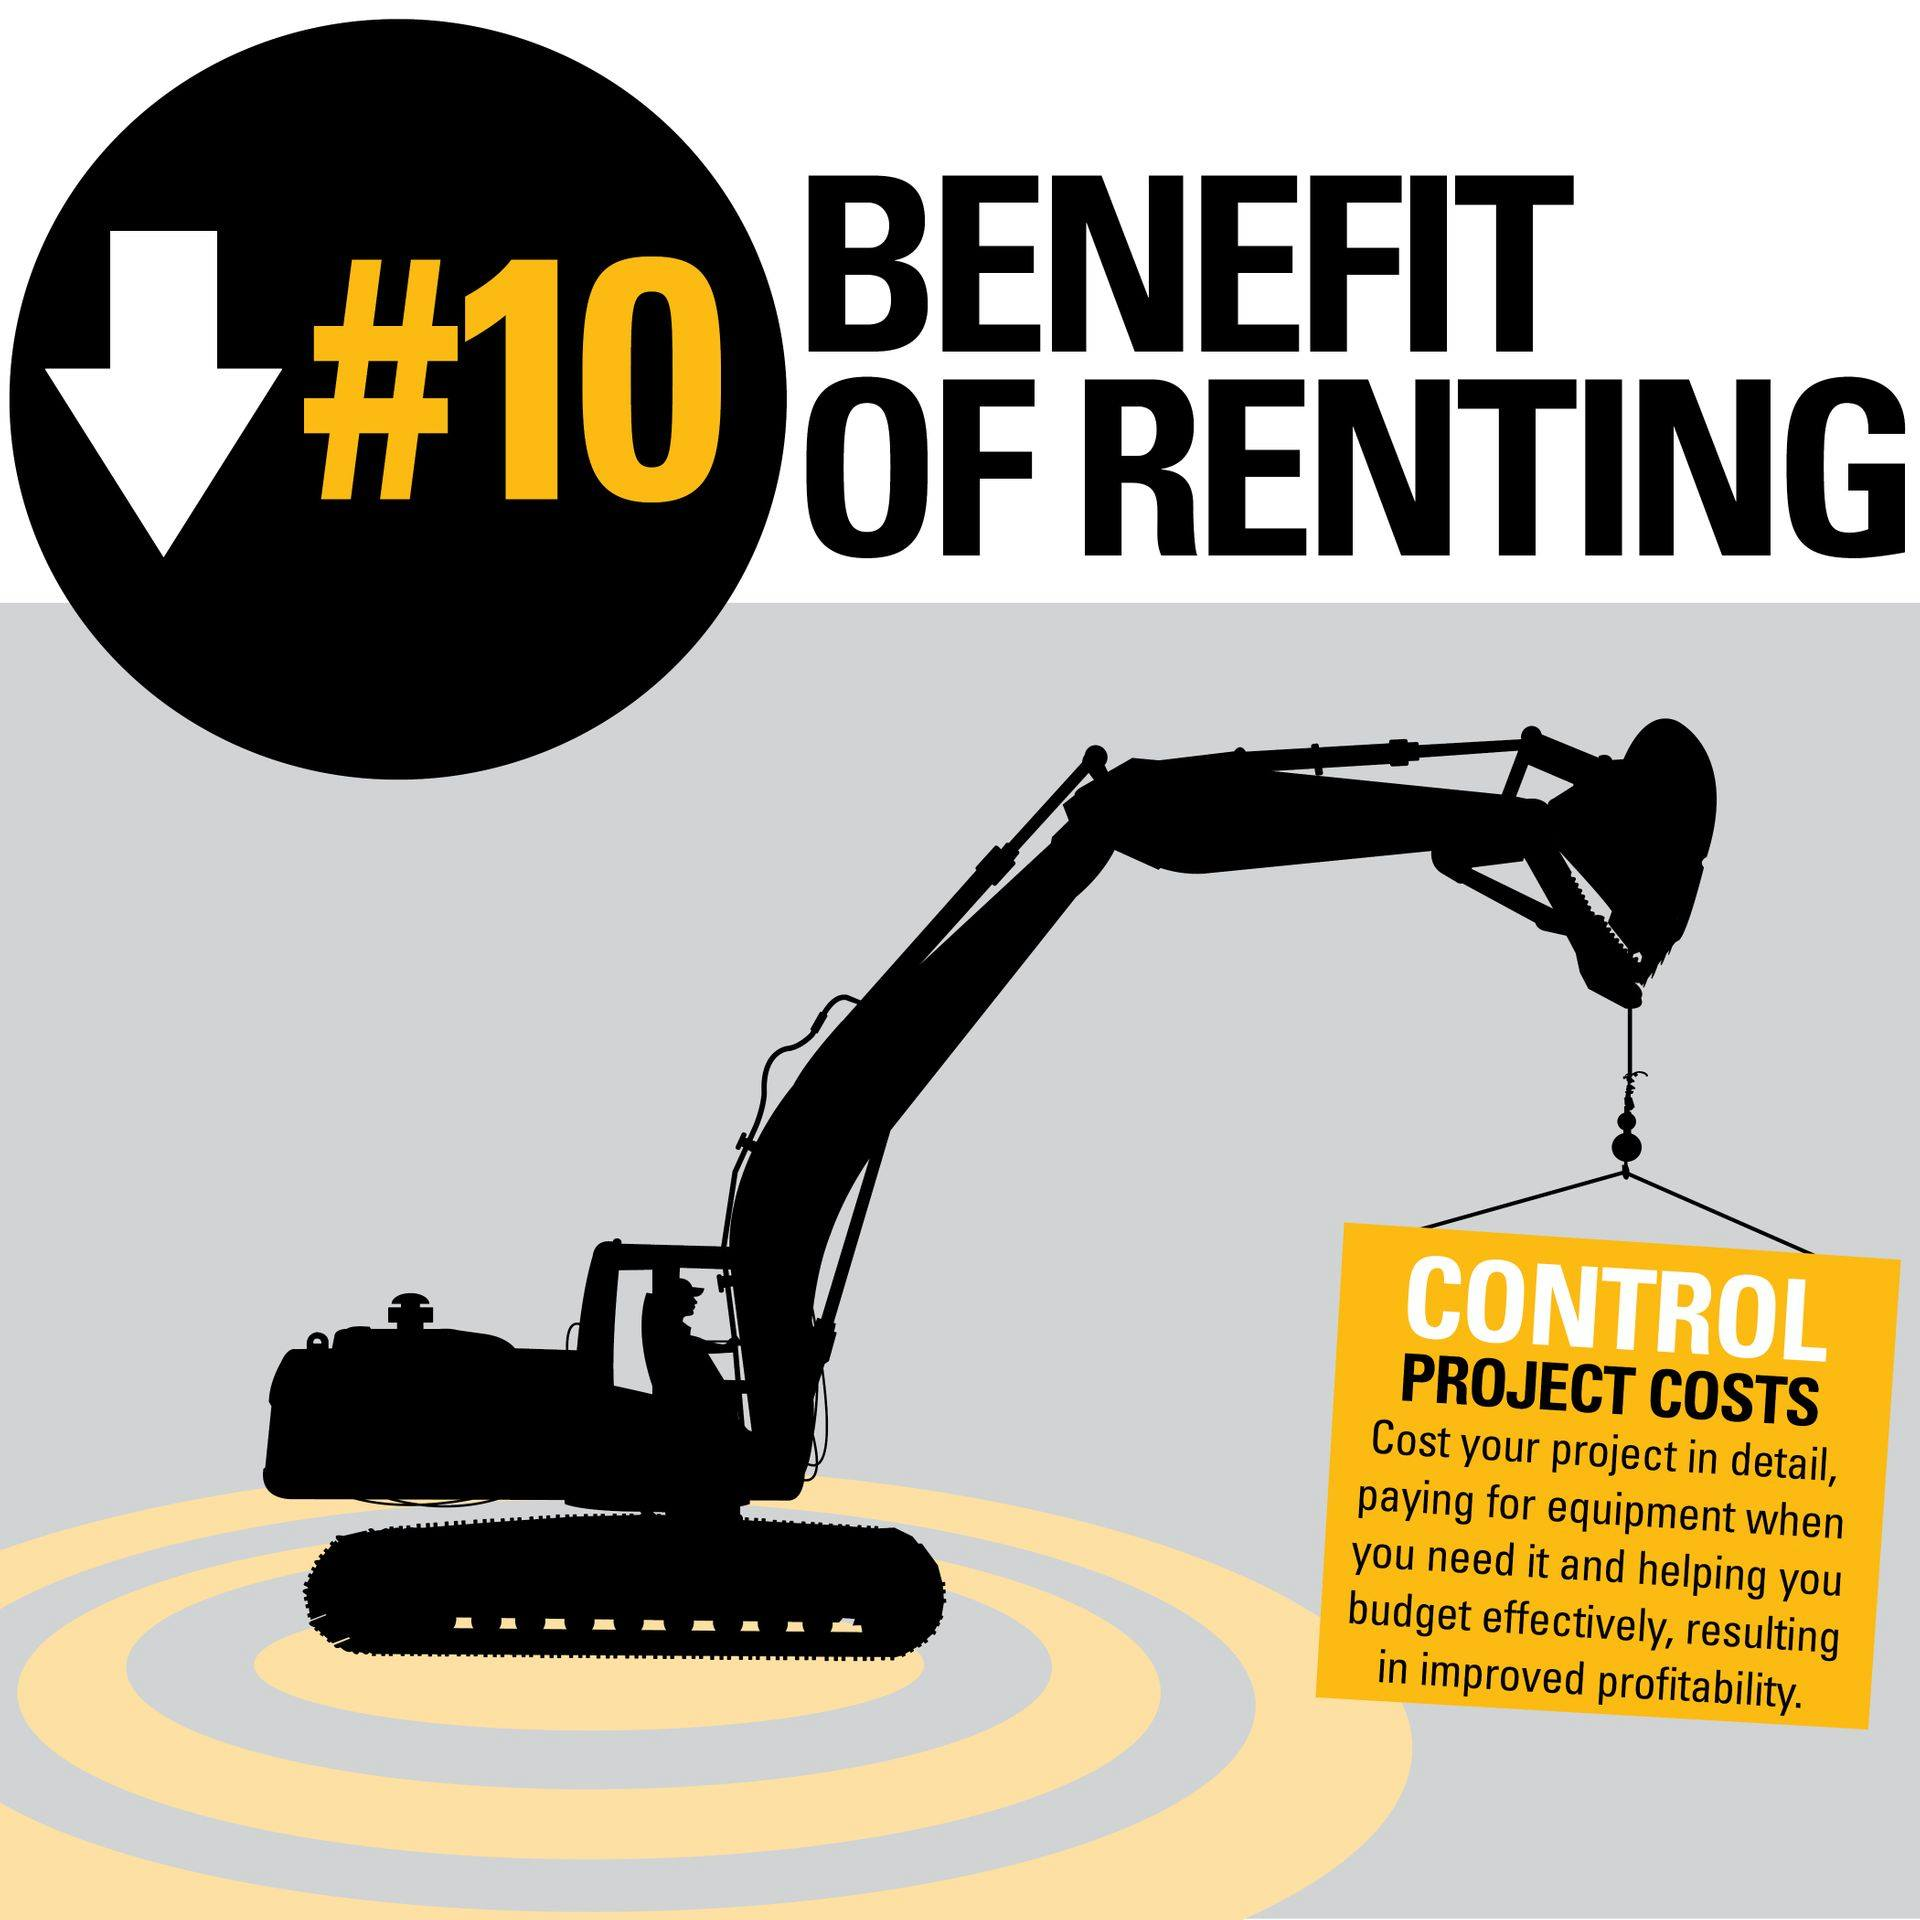 10 Benefit of Renting